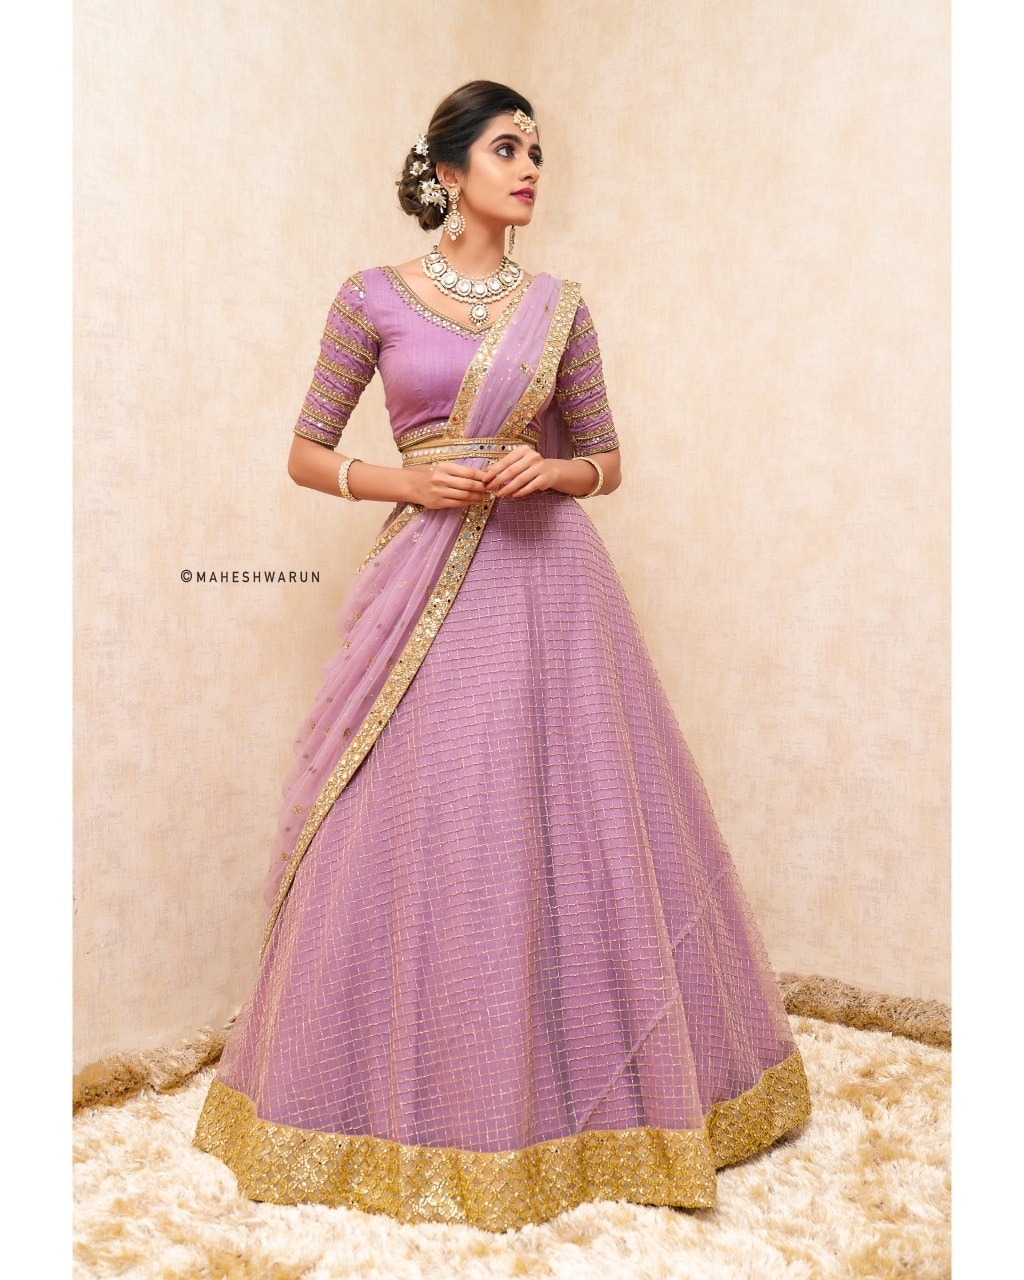 Lavendar Lehanga .